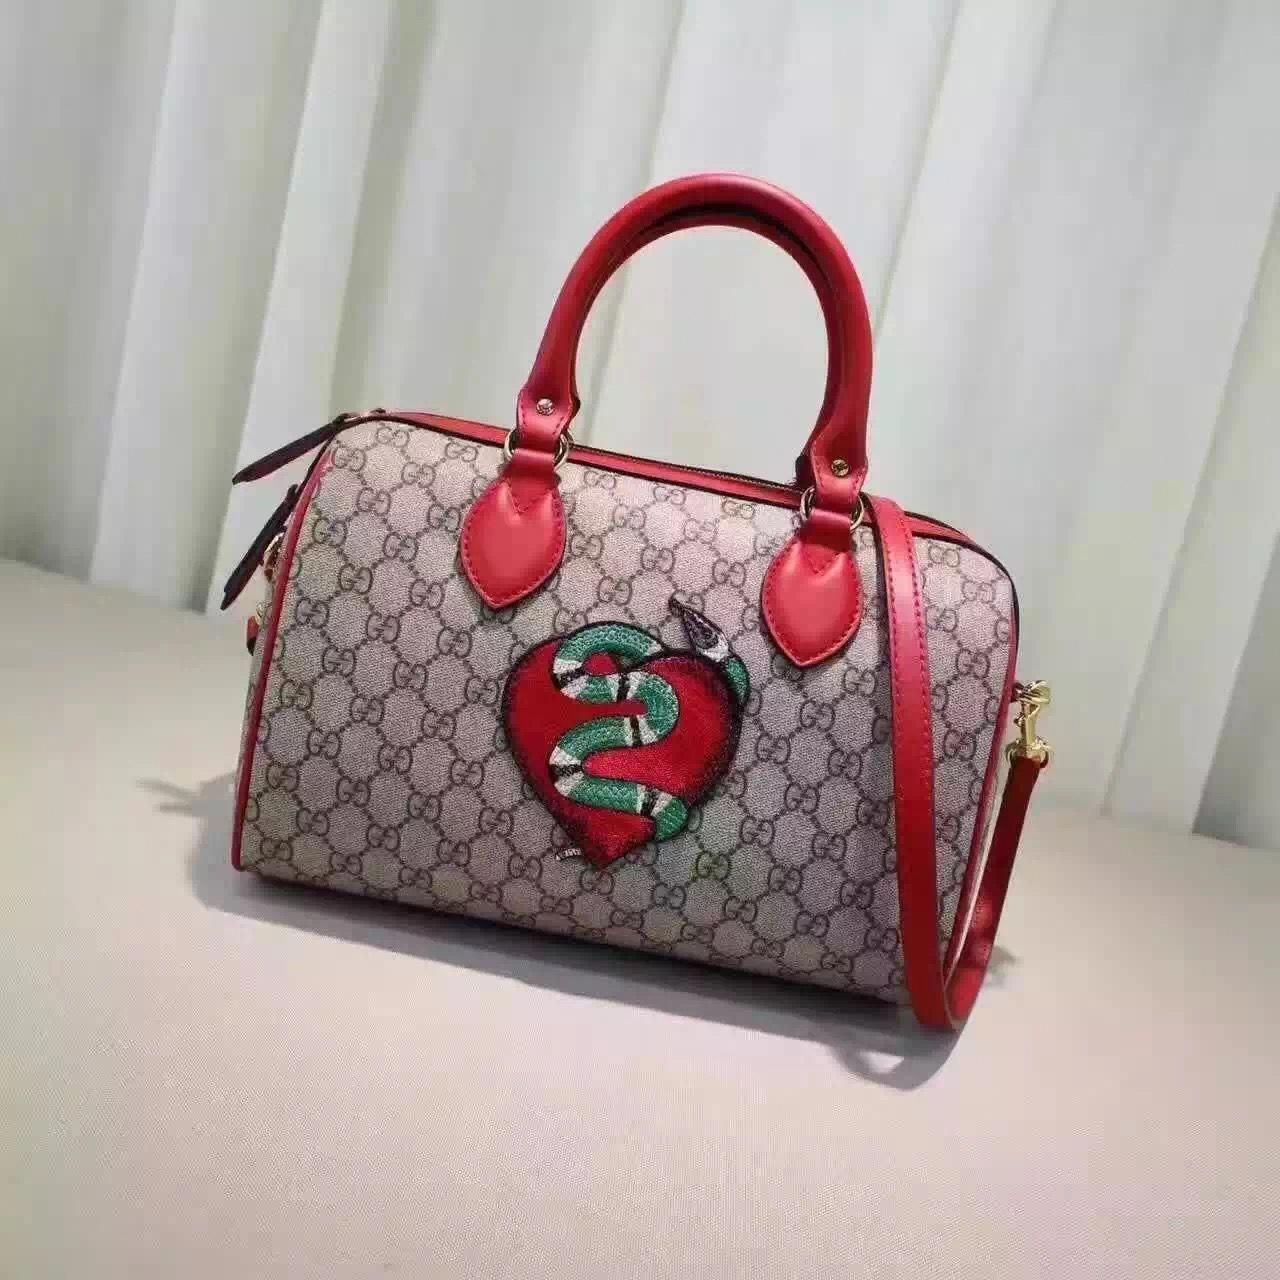 a746e5832ea Gucci Limited Edition GG Supreme Top Gandle Bag With Sneak Embroideries  409529 2016  Guccihandbags